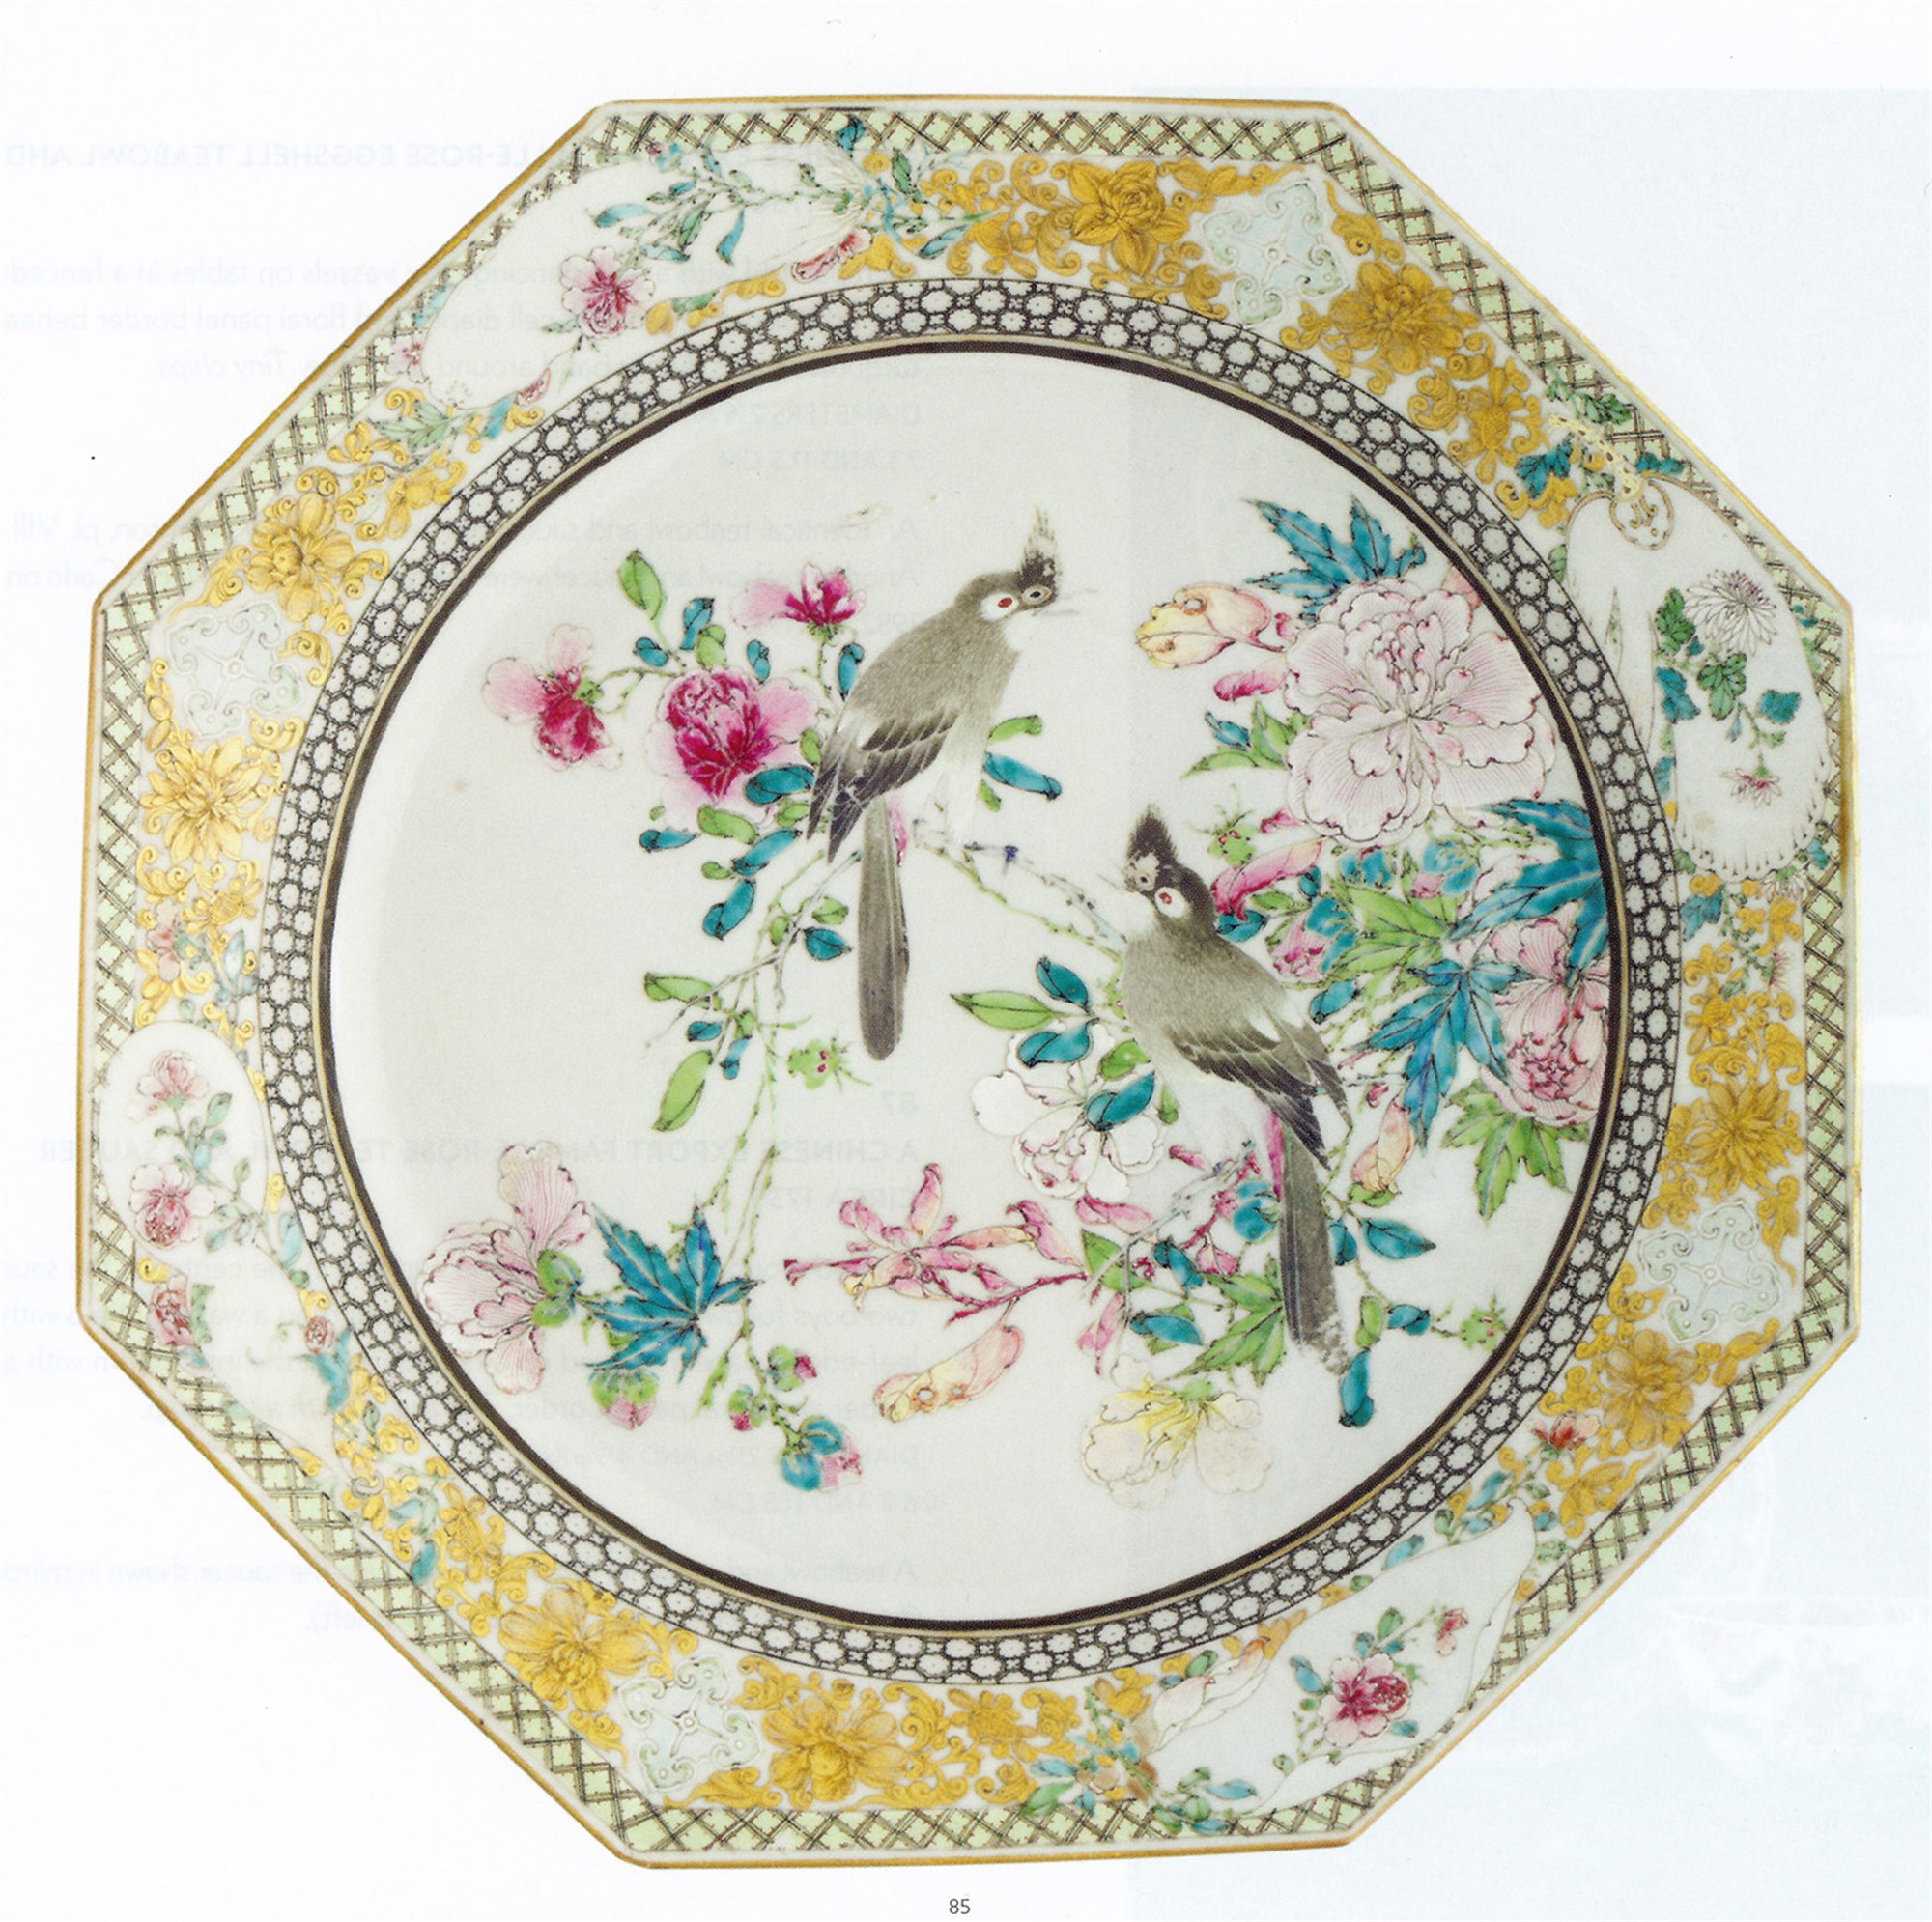 SUPERB CHINESE EXPORT FAMILLE-ROSE OCTAGONAL PLATE